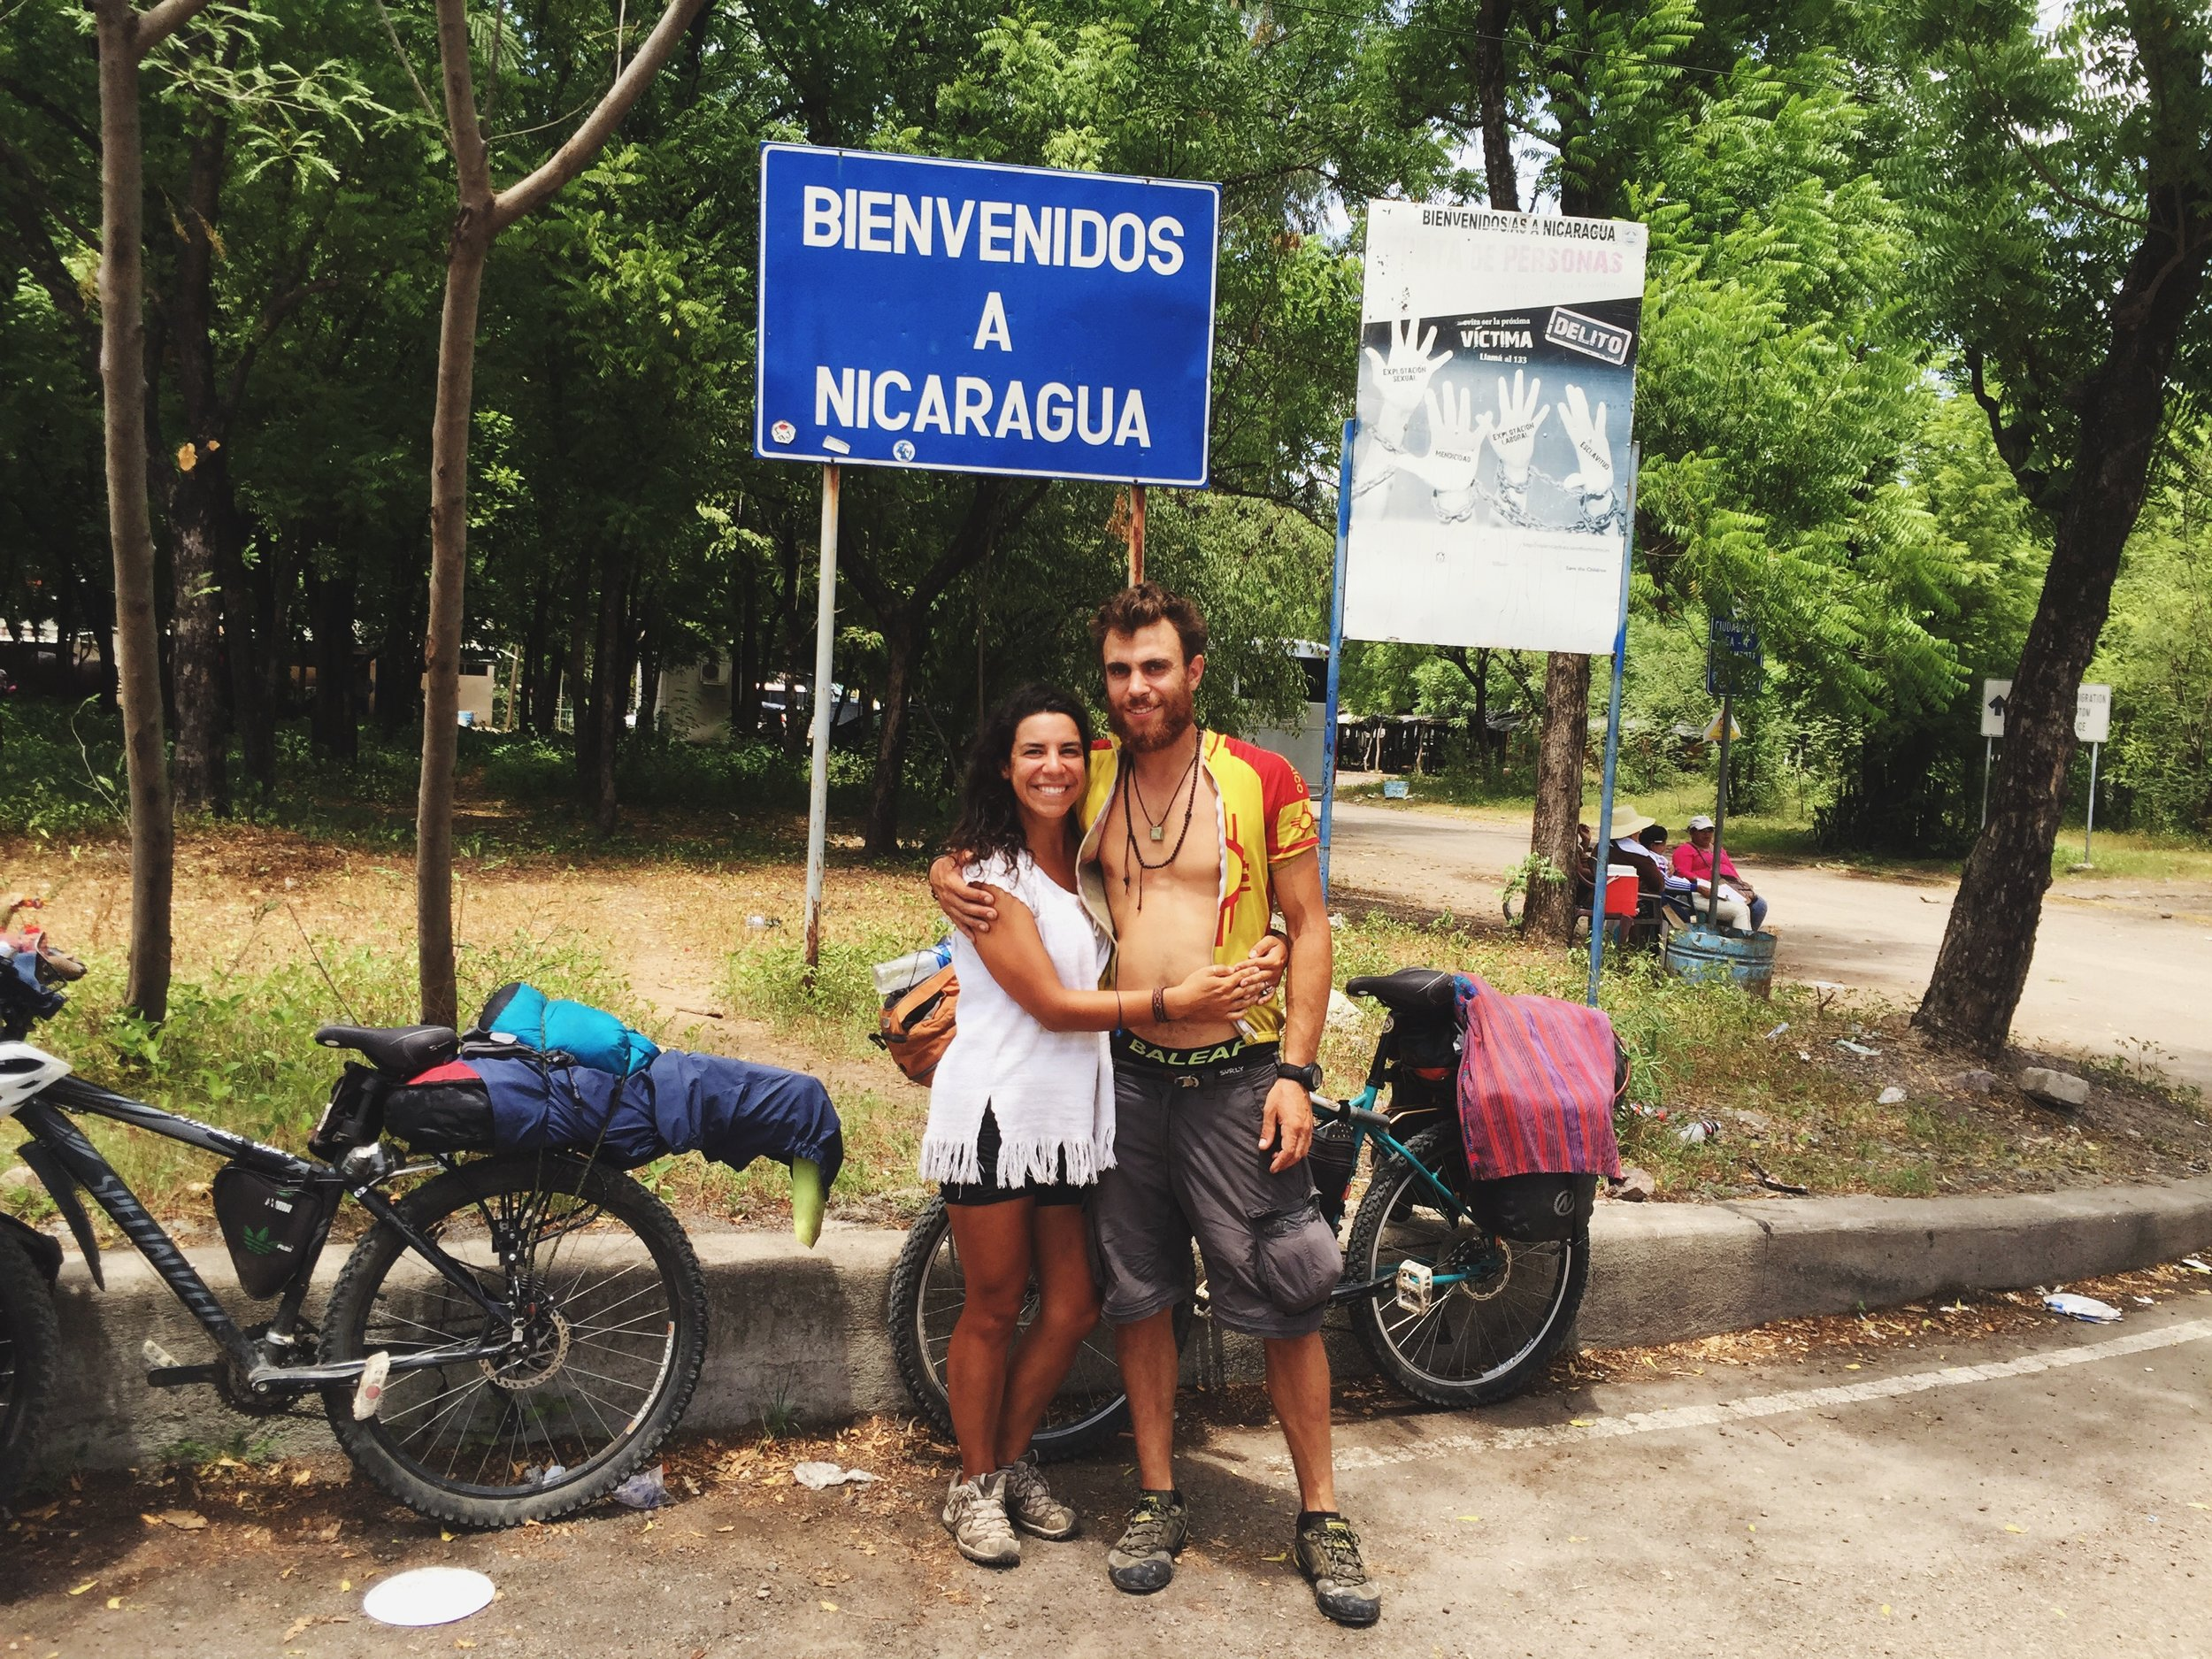 After a short pedal out of Honduras, we crossed the border into Nicaragua on July 25th.